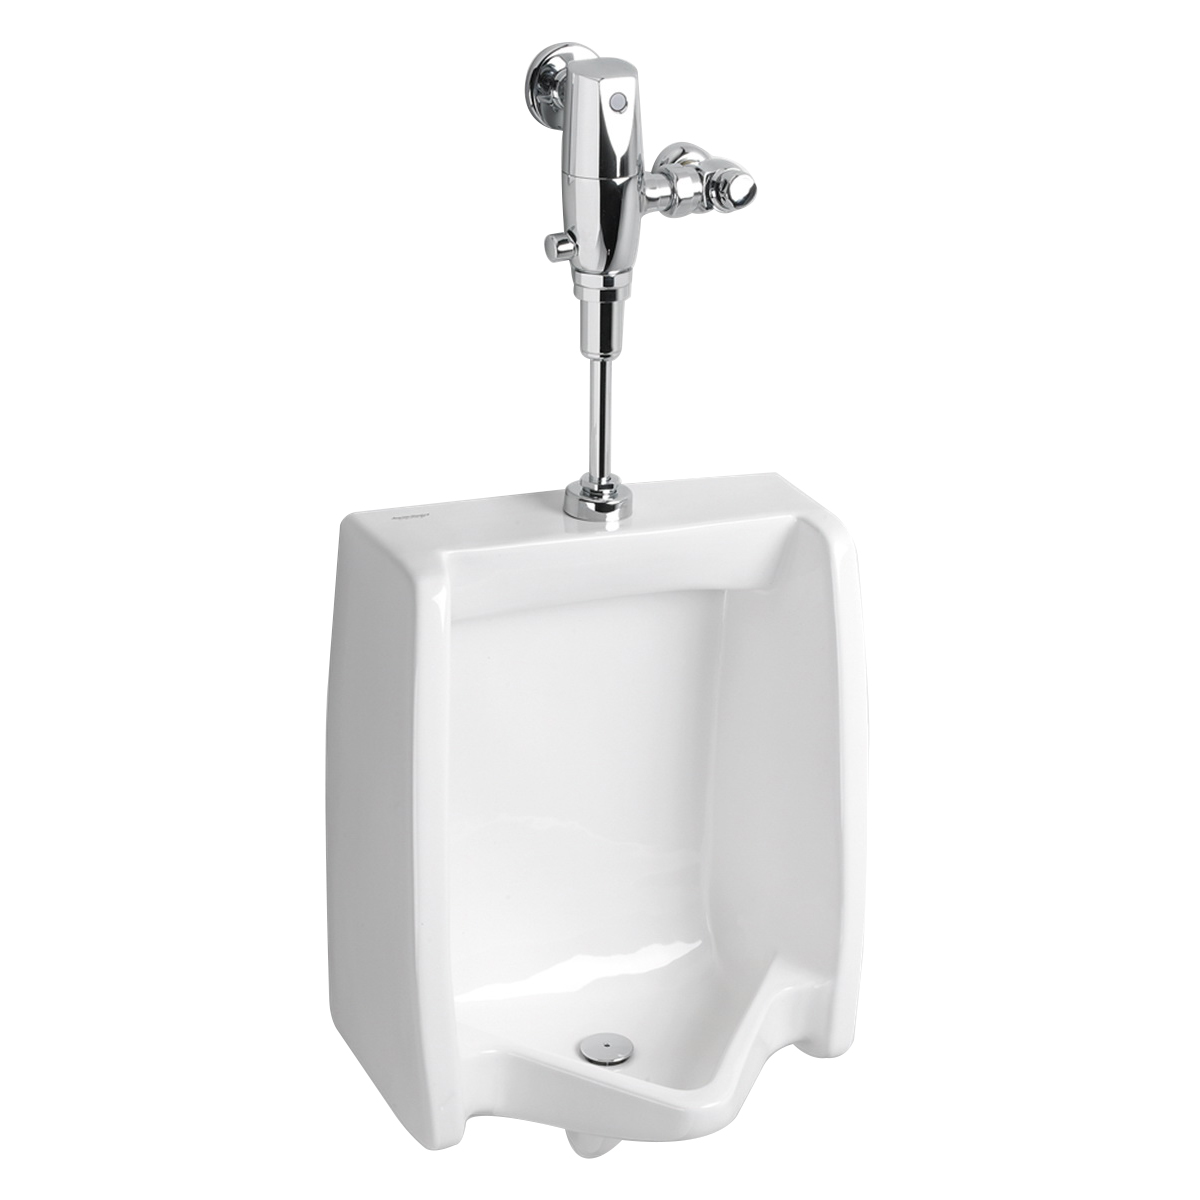 American Standard Washbrook ® FloWise® 6590.001.020 White Vitreous China Wall Mount Low Consumption Universal Urinal, NPTF Outlet, 0.125 - 1 gpf